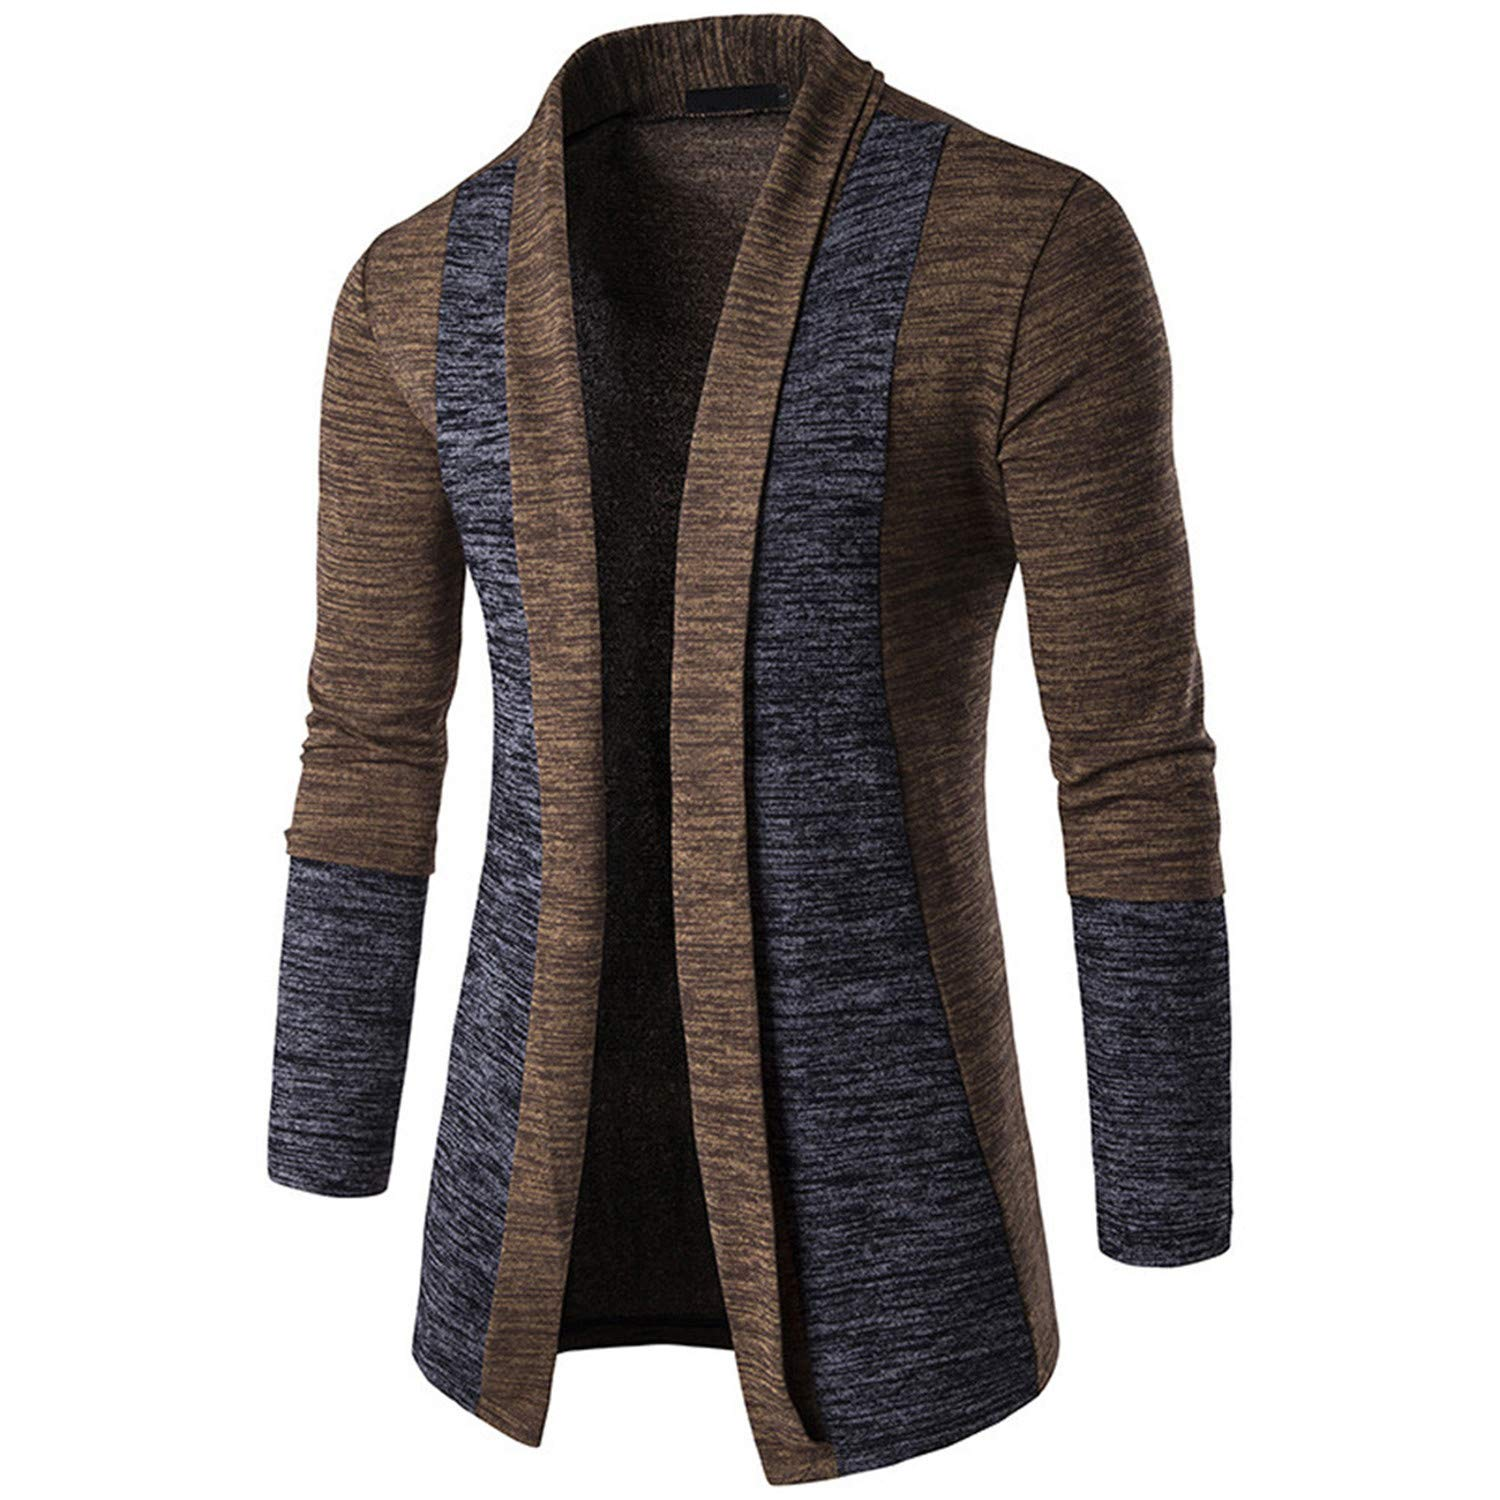 Amazon.com: 2019 Warm Style Jacket Winter Warm Knit Cardigan Outerwear & Coats Cotton Blend New Long Sleeve Mens Jacket Chaqueta Hombre 18SEP12 C XXL: ...